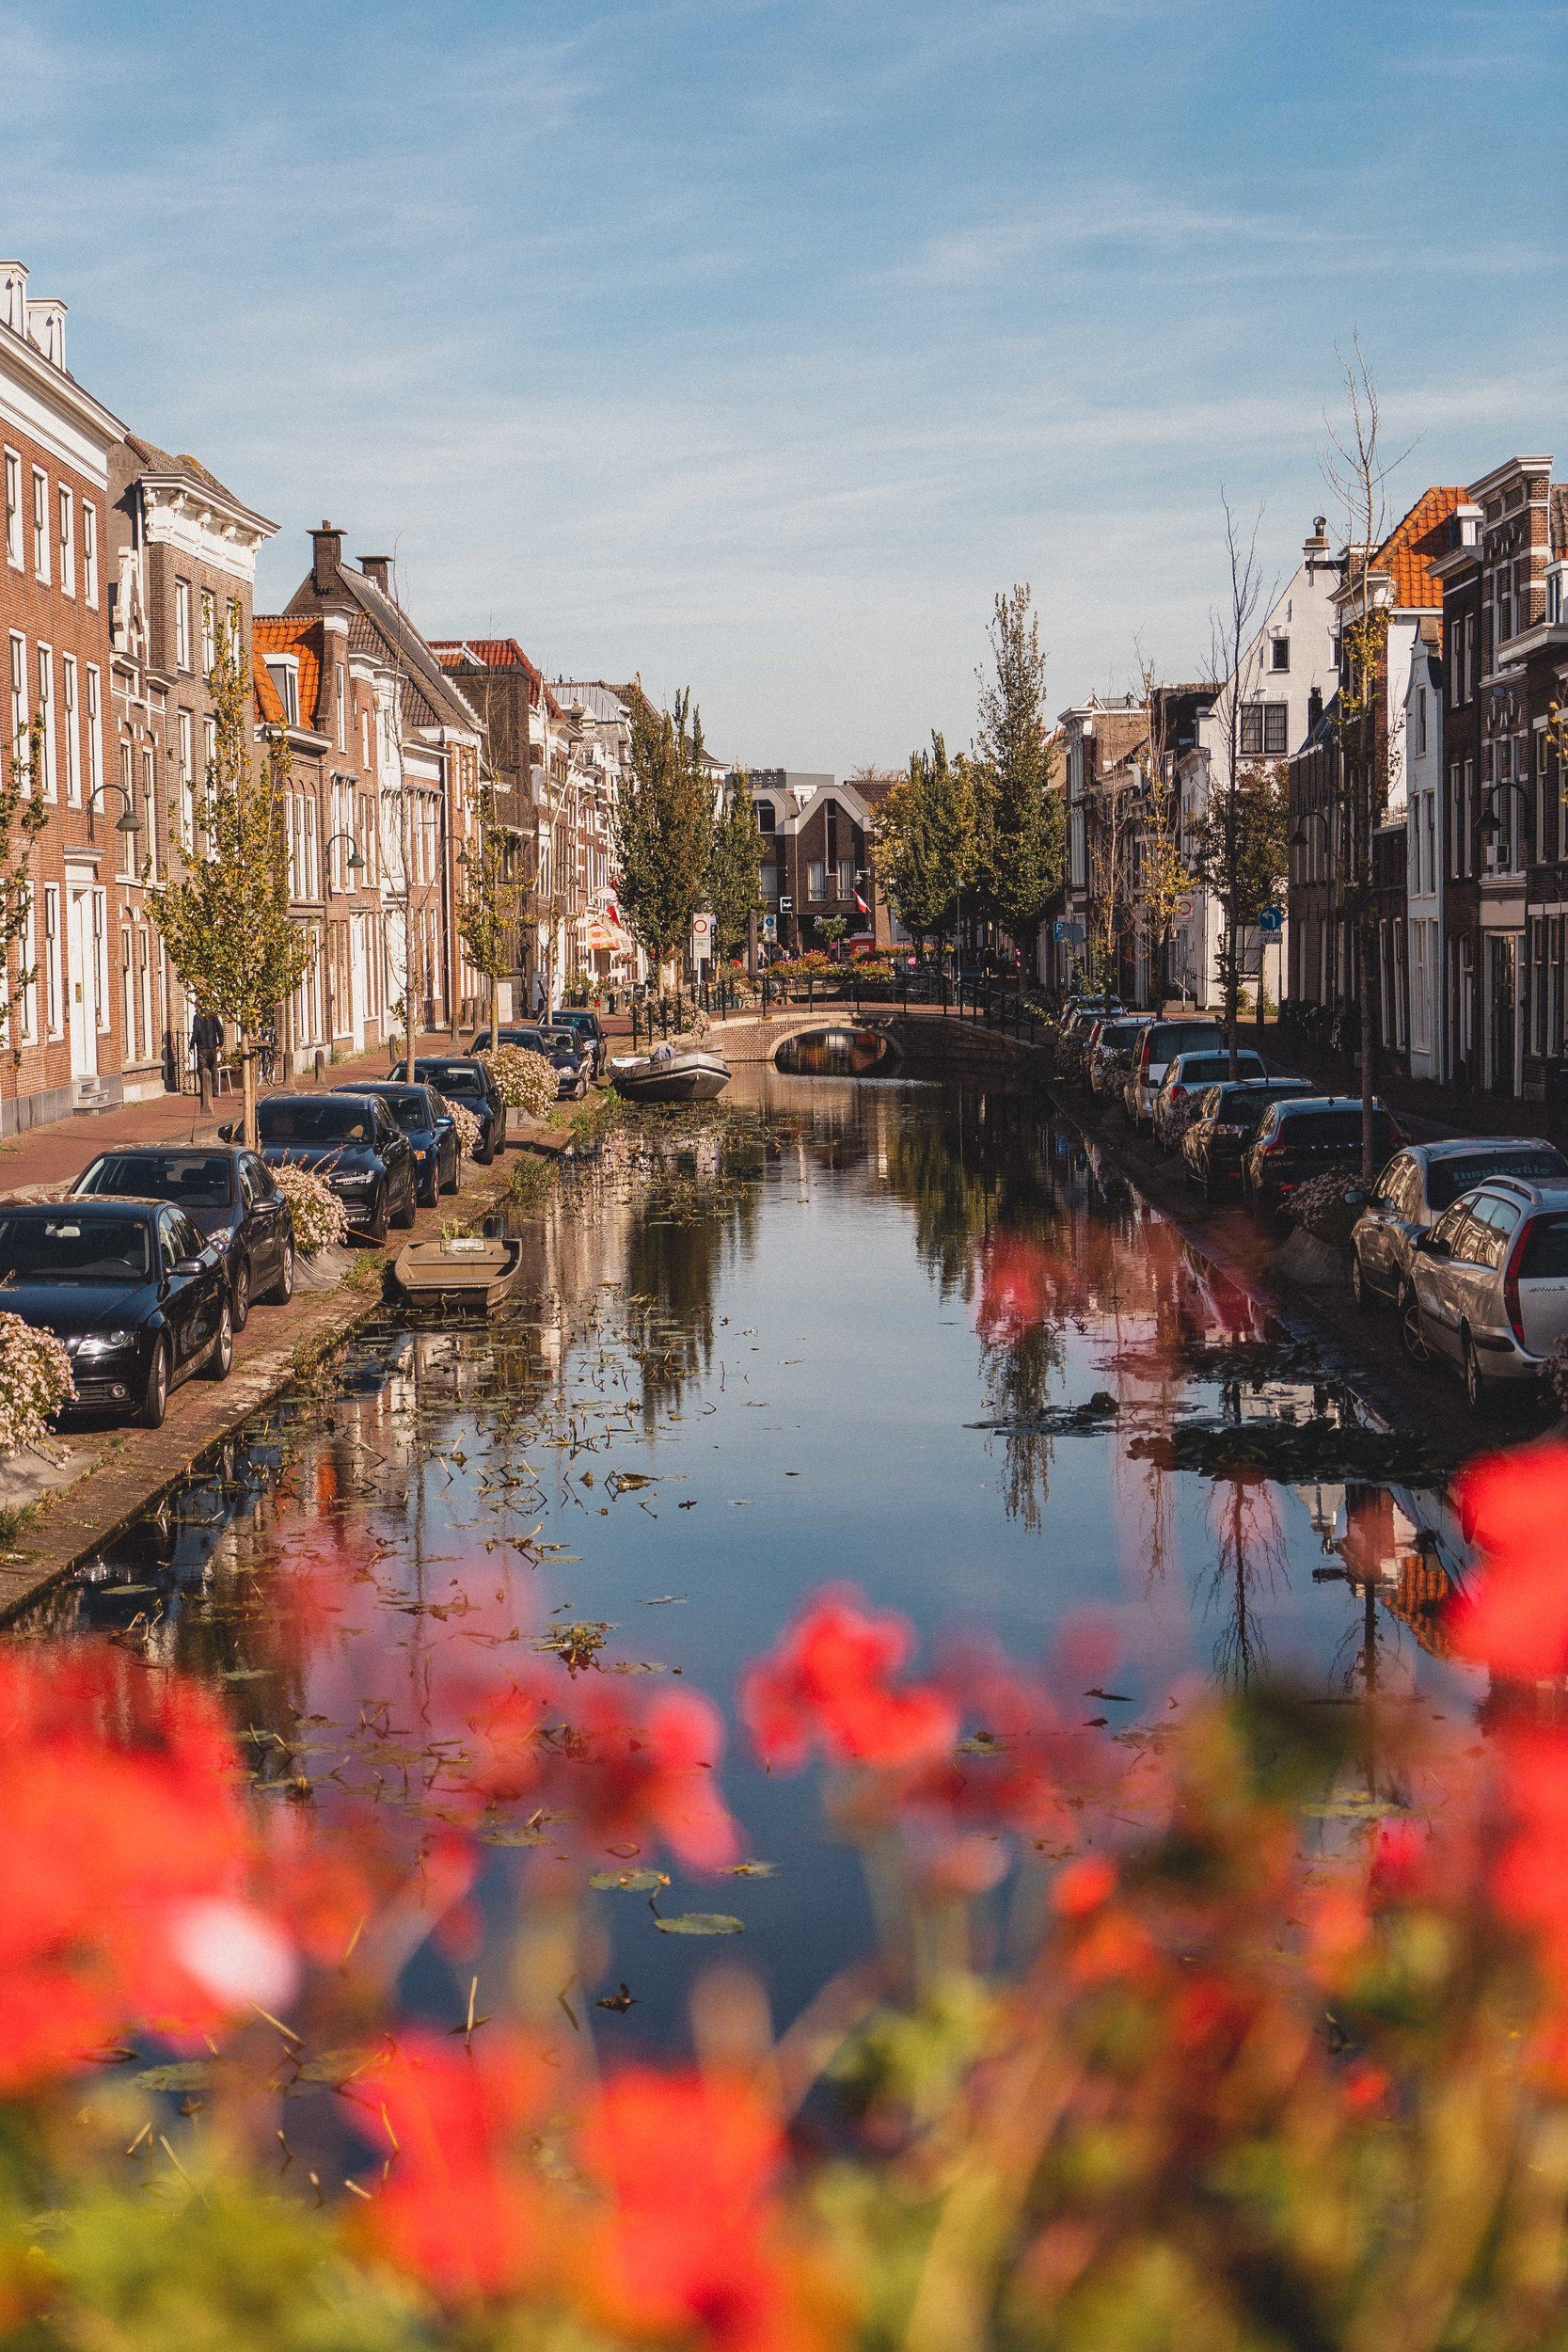 Here's why you need to visit Gouda, the cheese city of Holland, the Netherlands on your next Dutch adventure. How to visit the city of Gouda and what to do once there; admire the canals, enjoy the cheese culture, visit the town museum, and more!